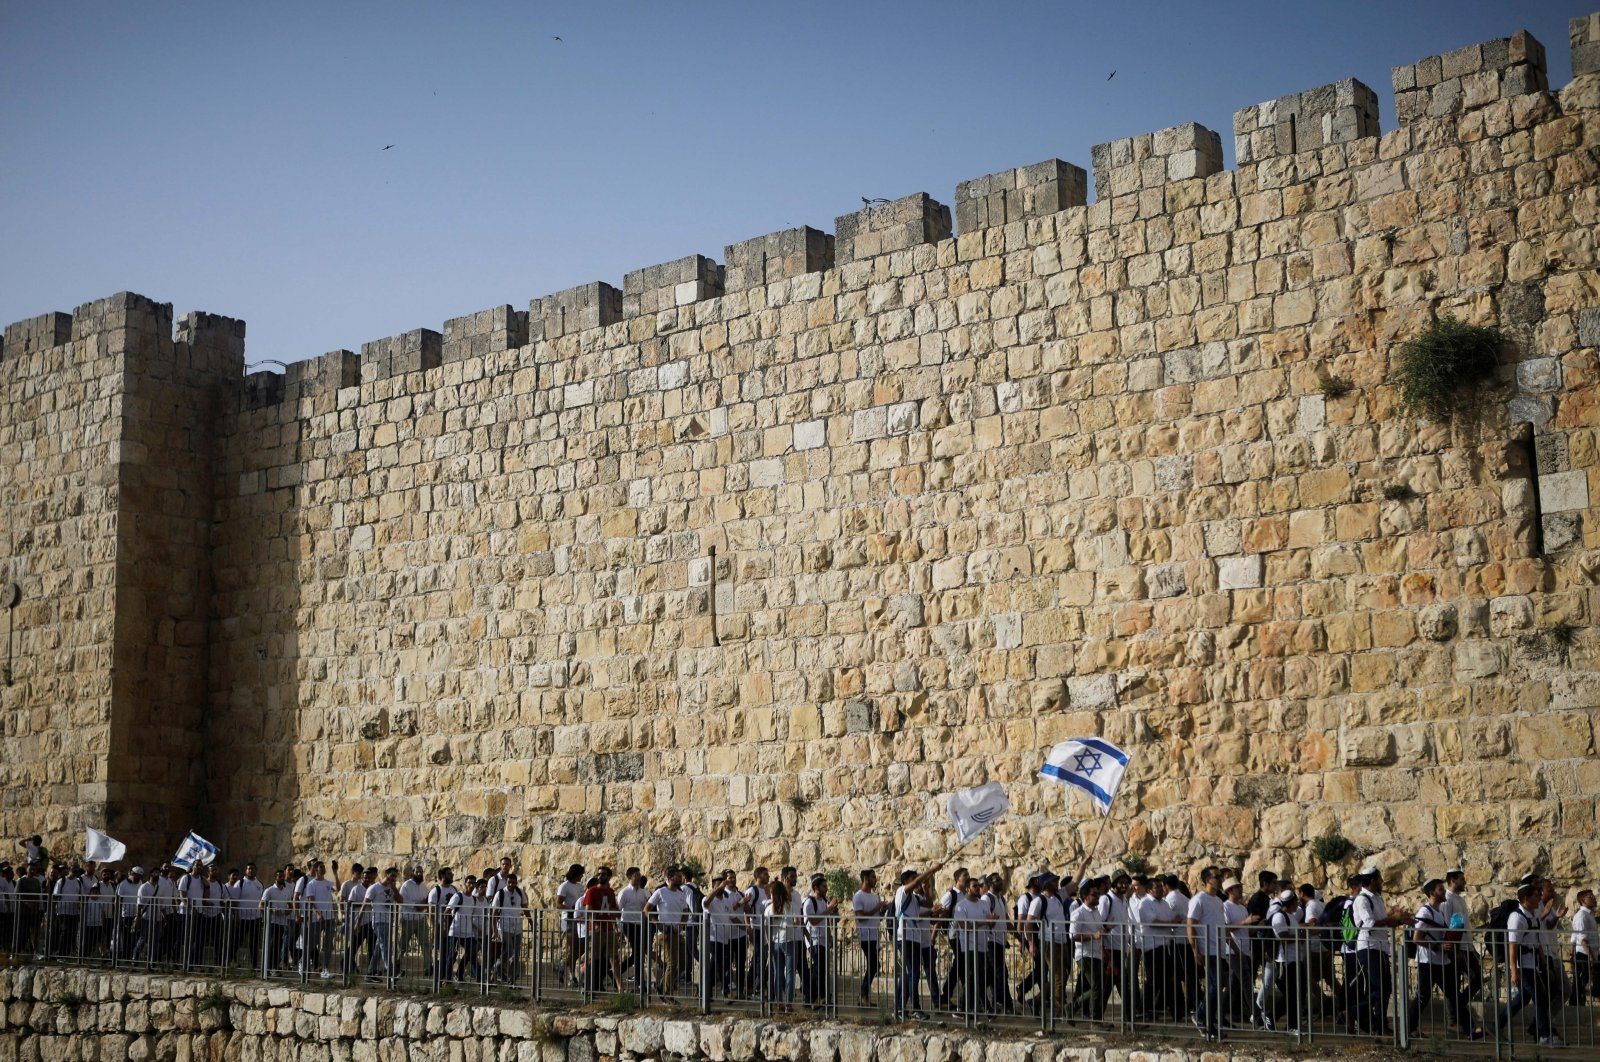 Youth wave Israeli flags during a parade marking Jerusalem Day amid Israeli-Palestinian tension as they march along the walls surrounding East Jerusalem's Old City, occupied Palestine, May 10, 2021. (Reuters Photo)